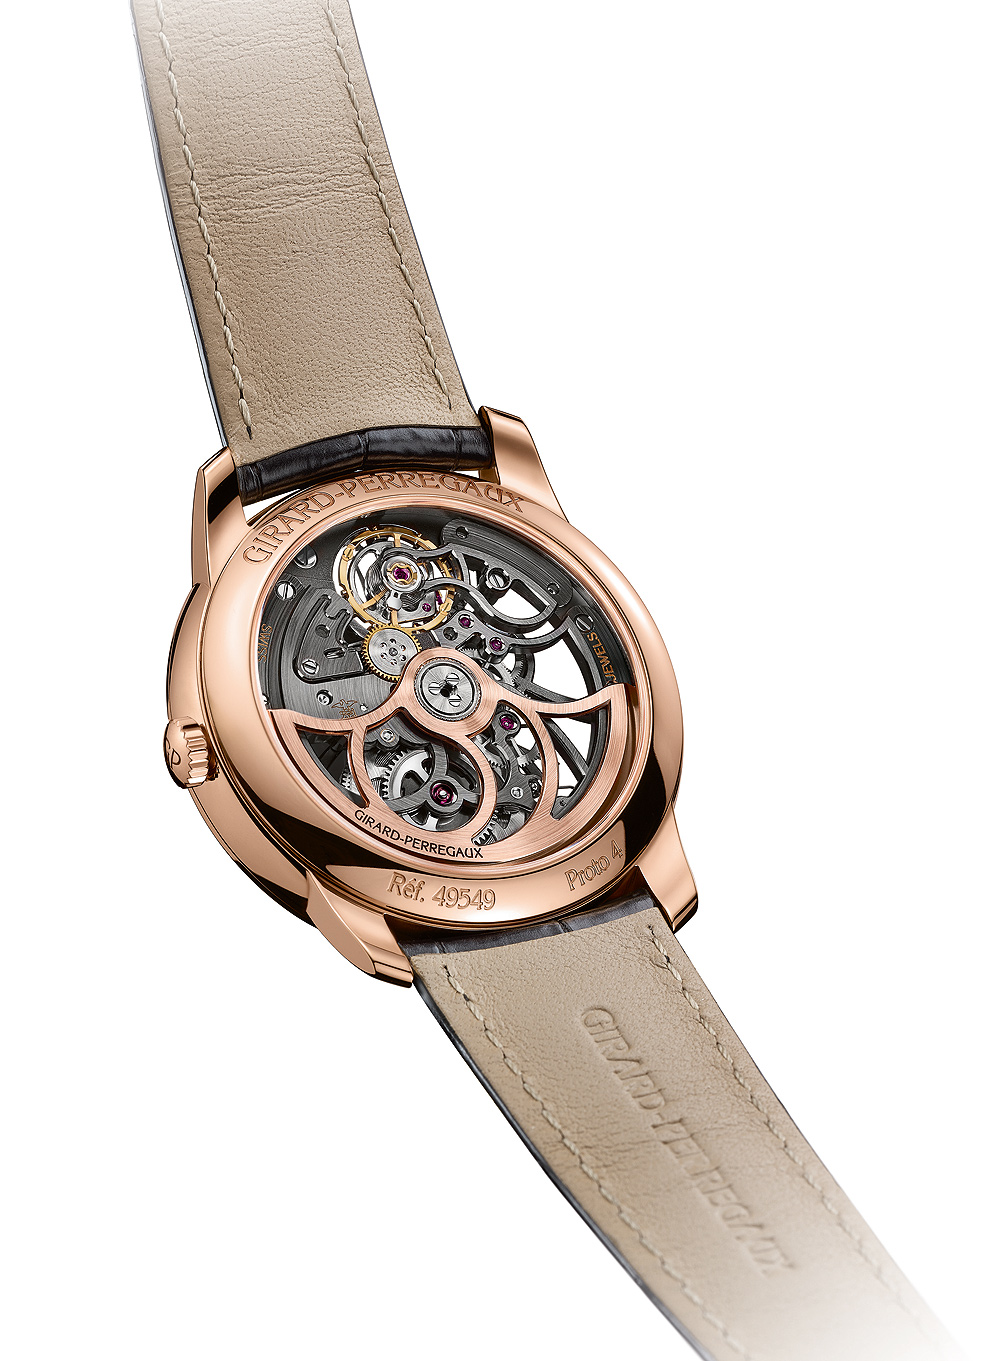 Girard-Perregaux 1966 Skeleton - back